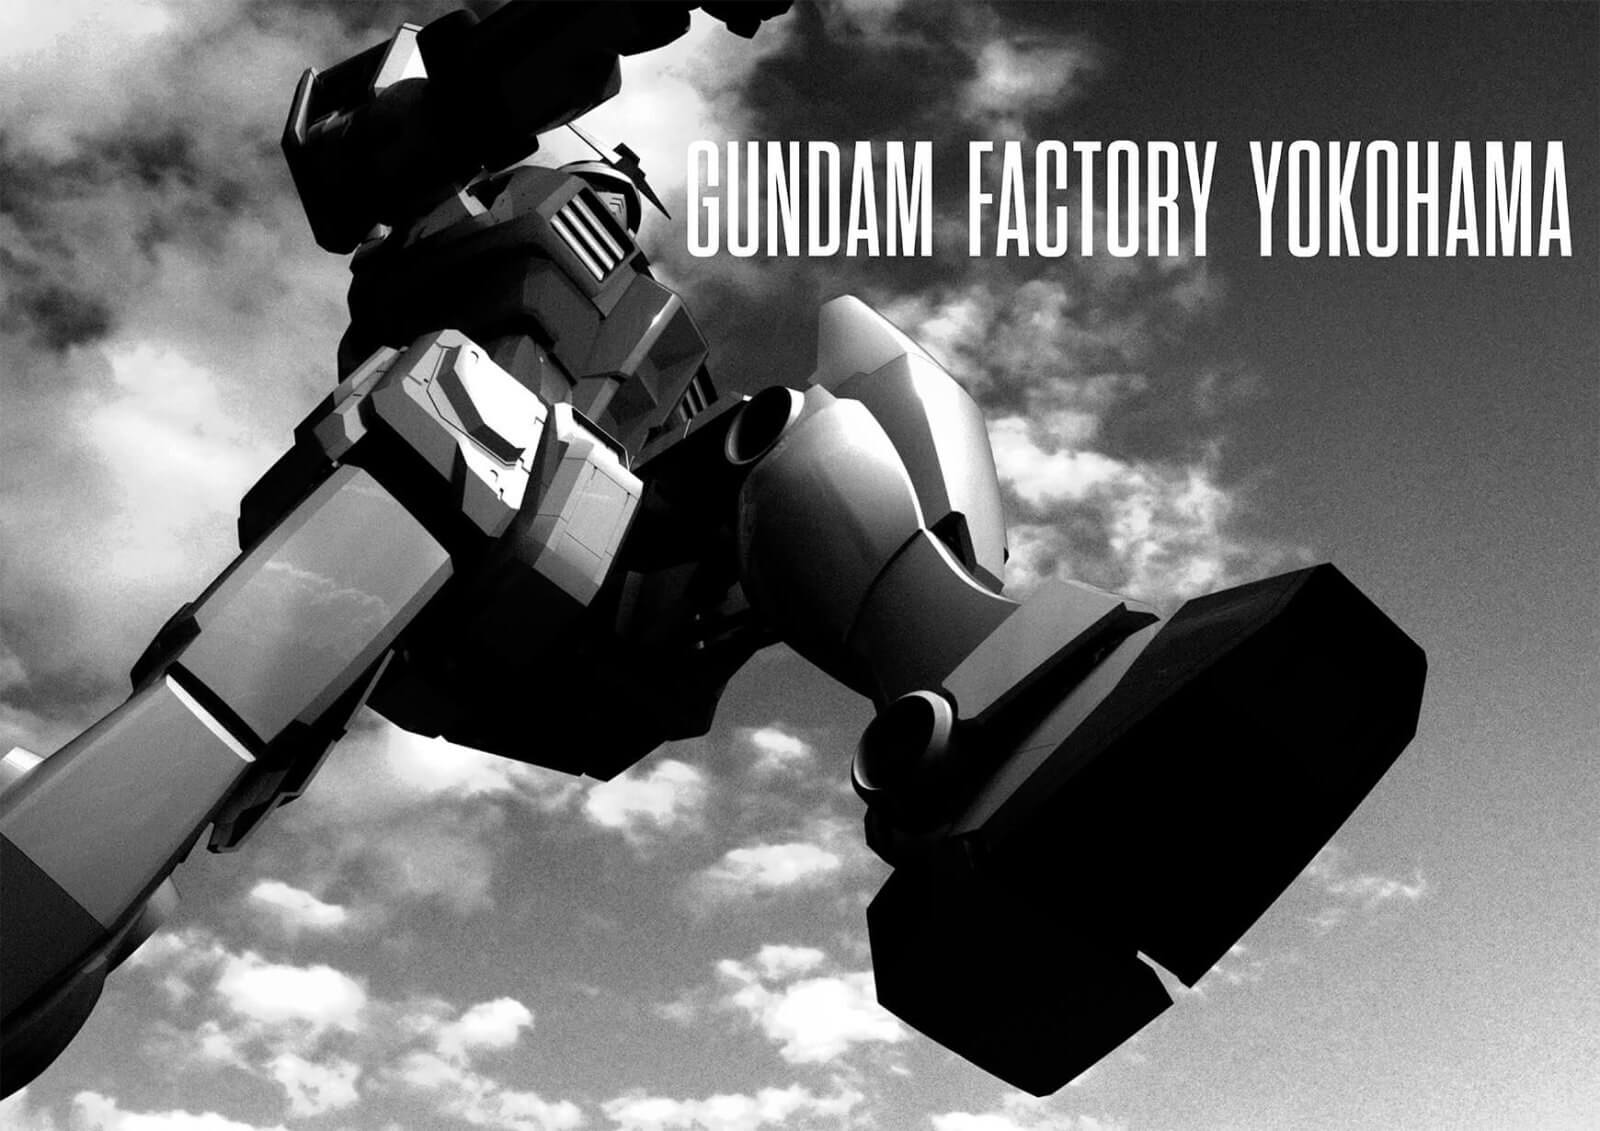 Japan is building a 60-foot, moving Gundam statue